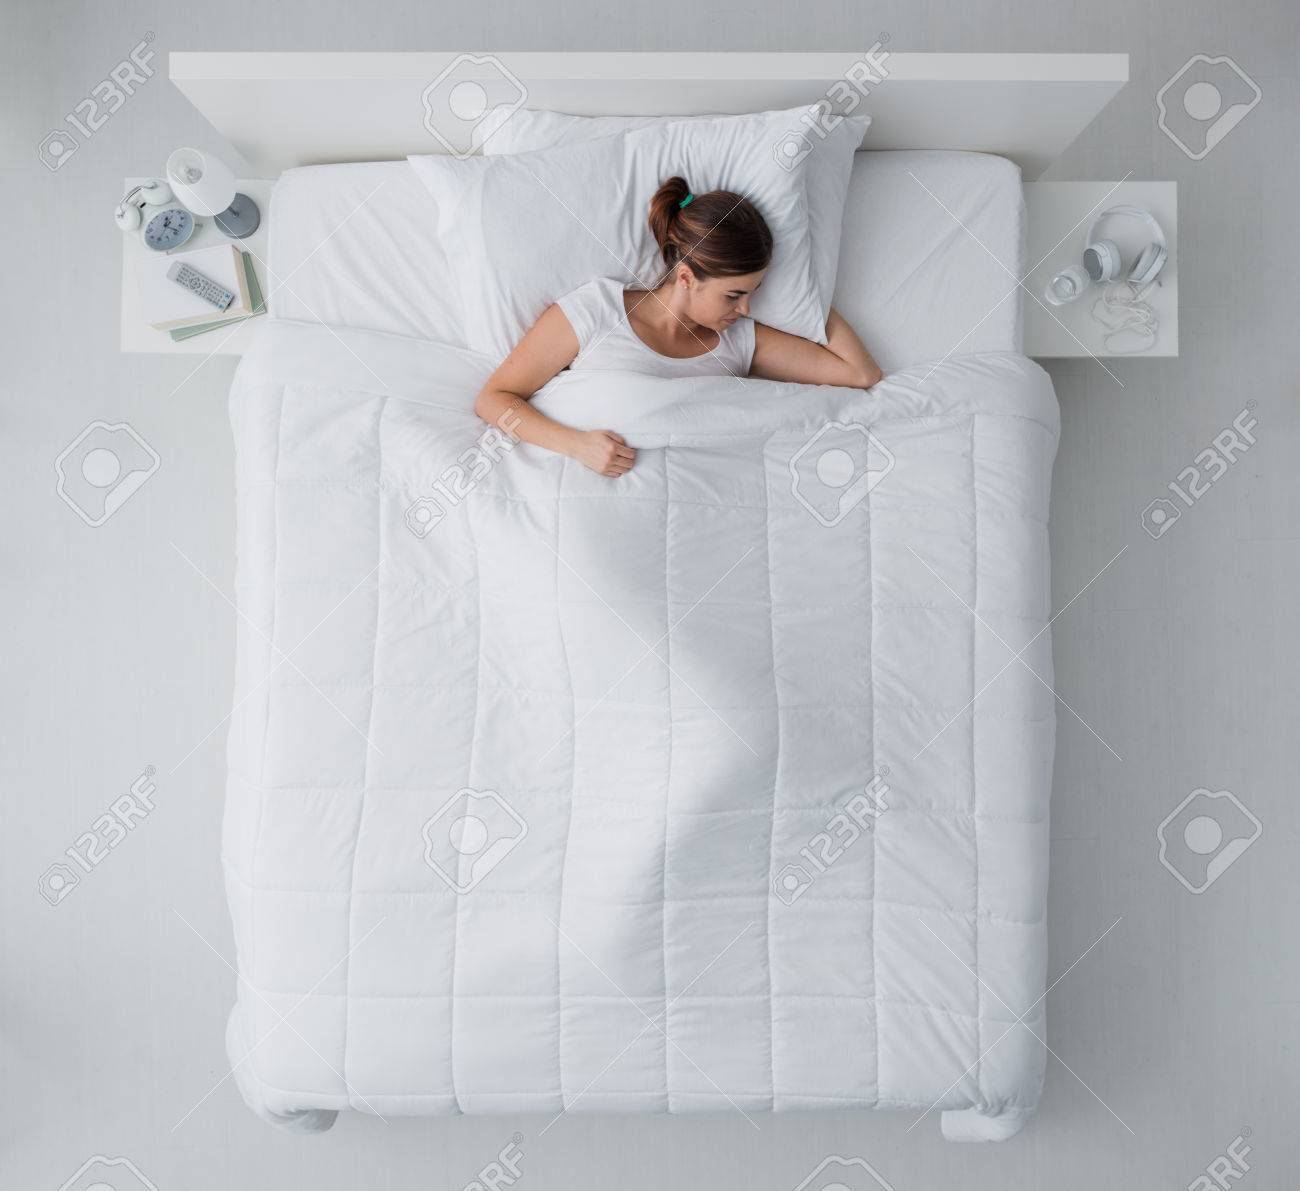 https://previews.123rf.com/images/stockasso/stockasso1702/stockasso170200077/72044568-beautiful-young-woman-lying-down-in-bed-and-sleeping-top-view.jpg